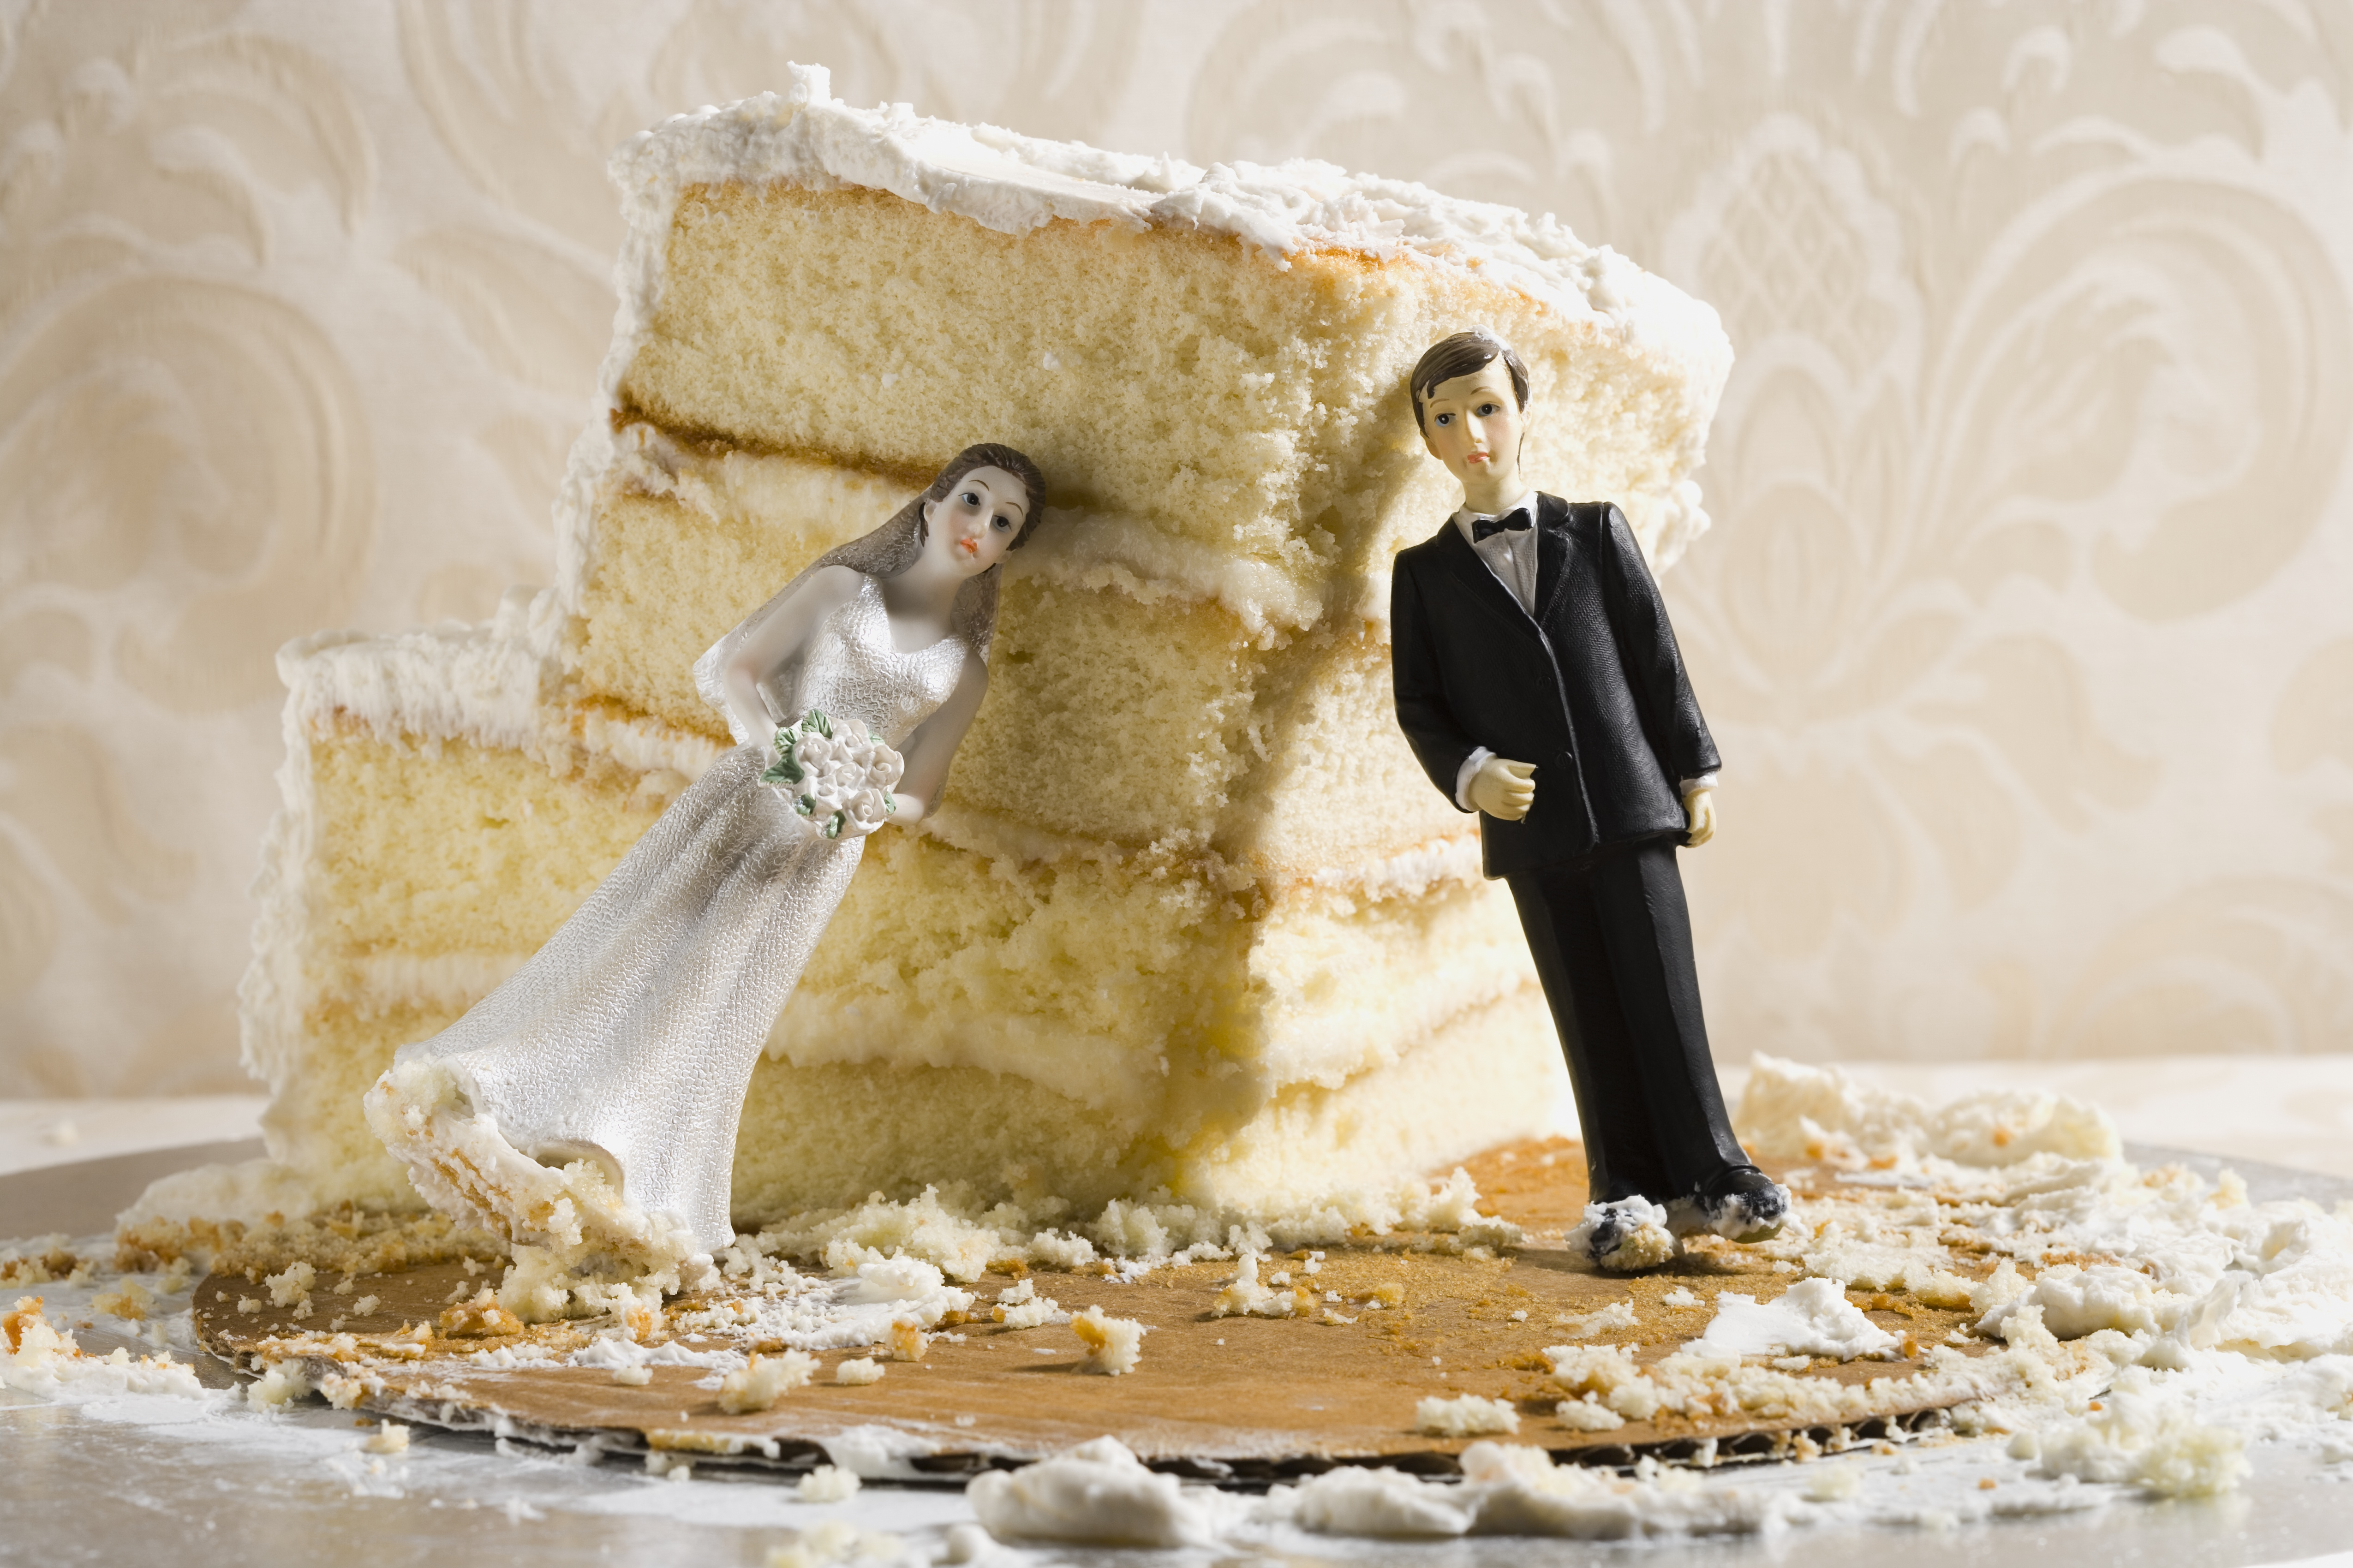 Wedding Cake Disasters